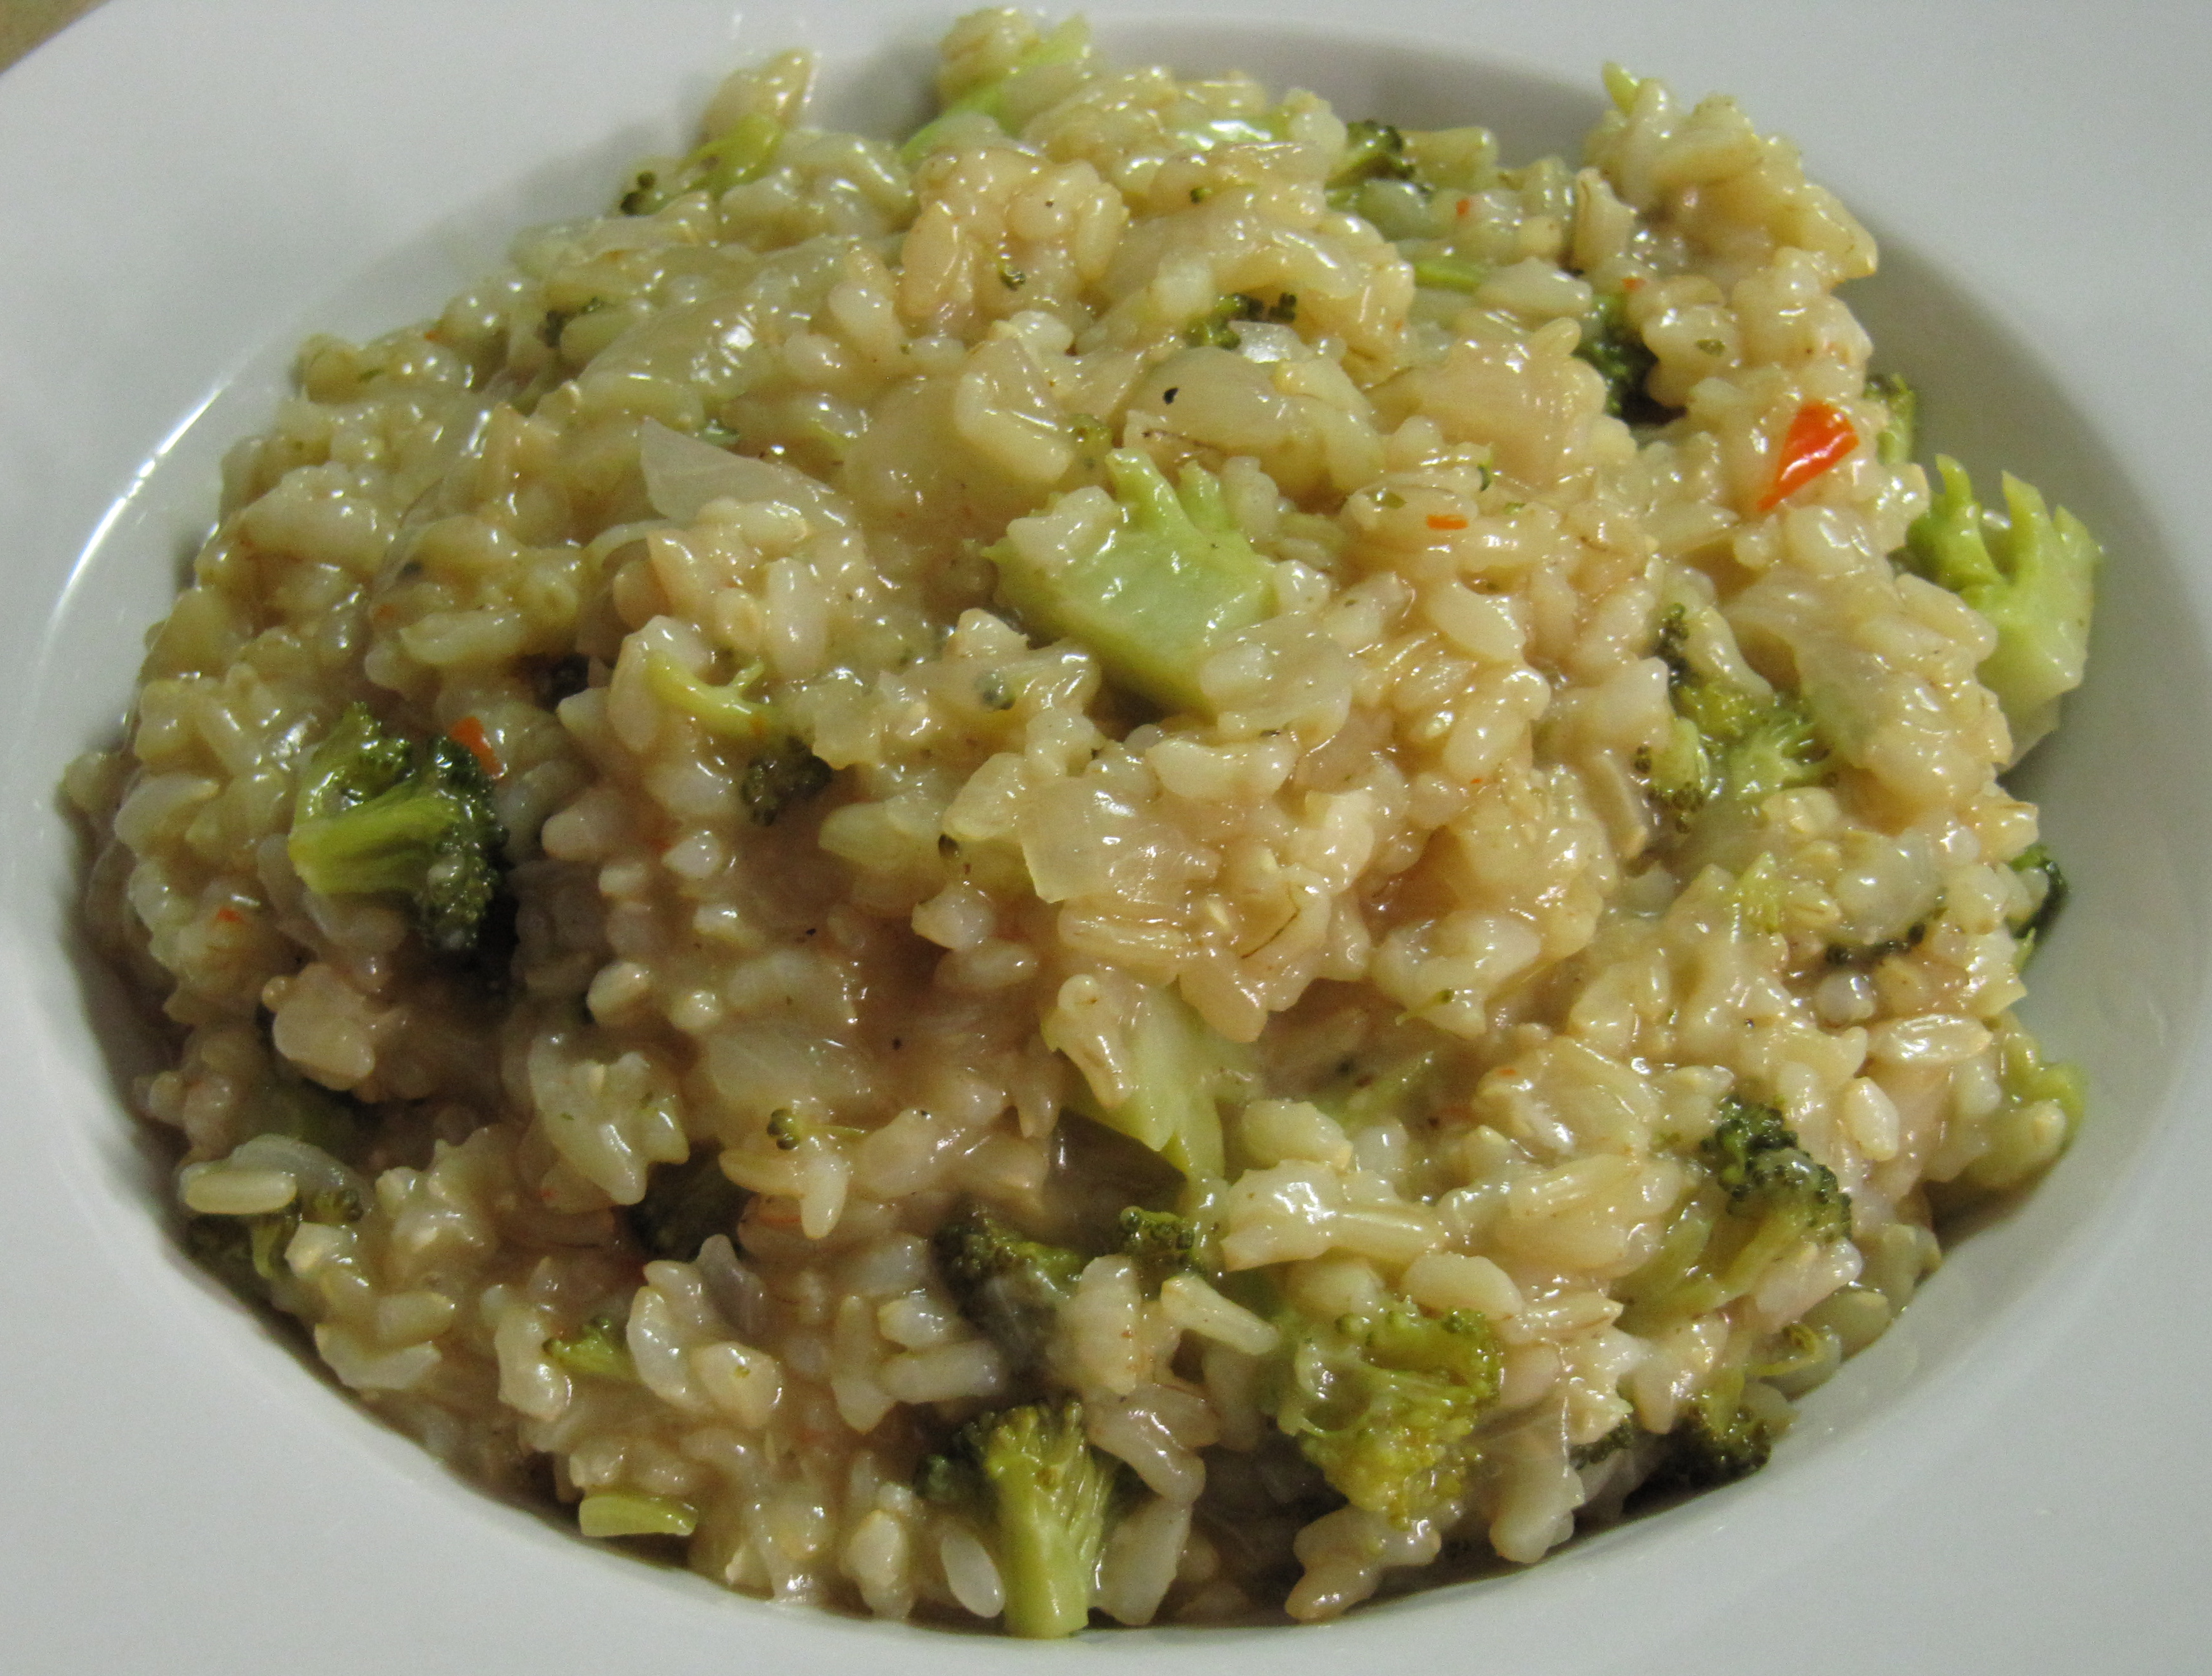 Creamy Broccoli & Lemon Risotto - Eat Better to Live Better